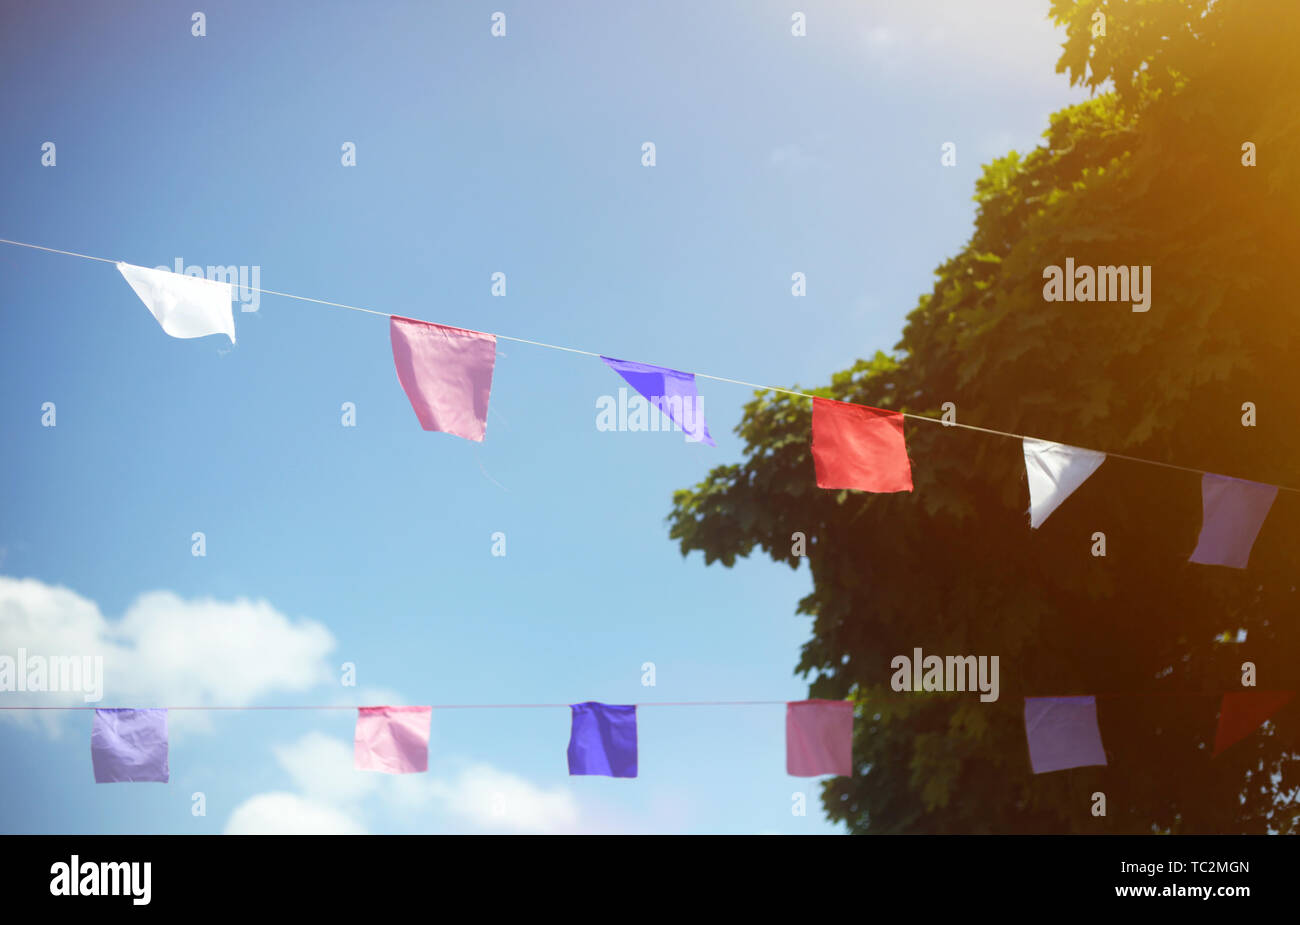 Colorful flags against blue sky with white clouds and trees. Summer street festival or party concept. - Stock Image